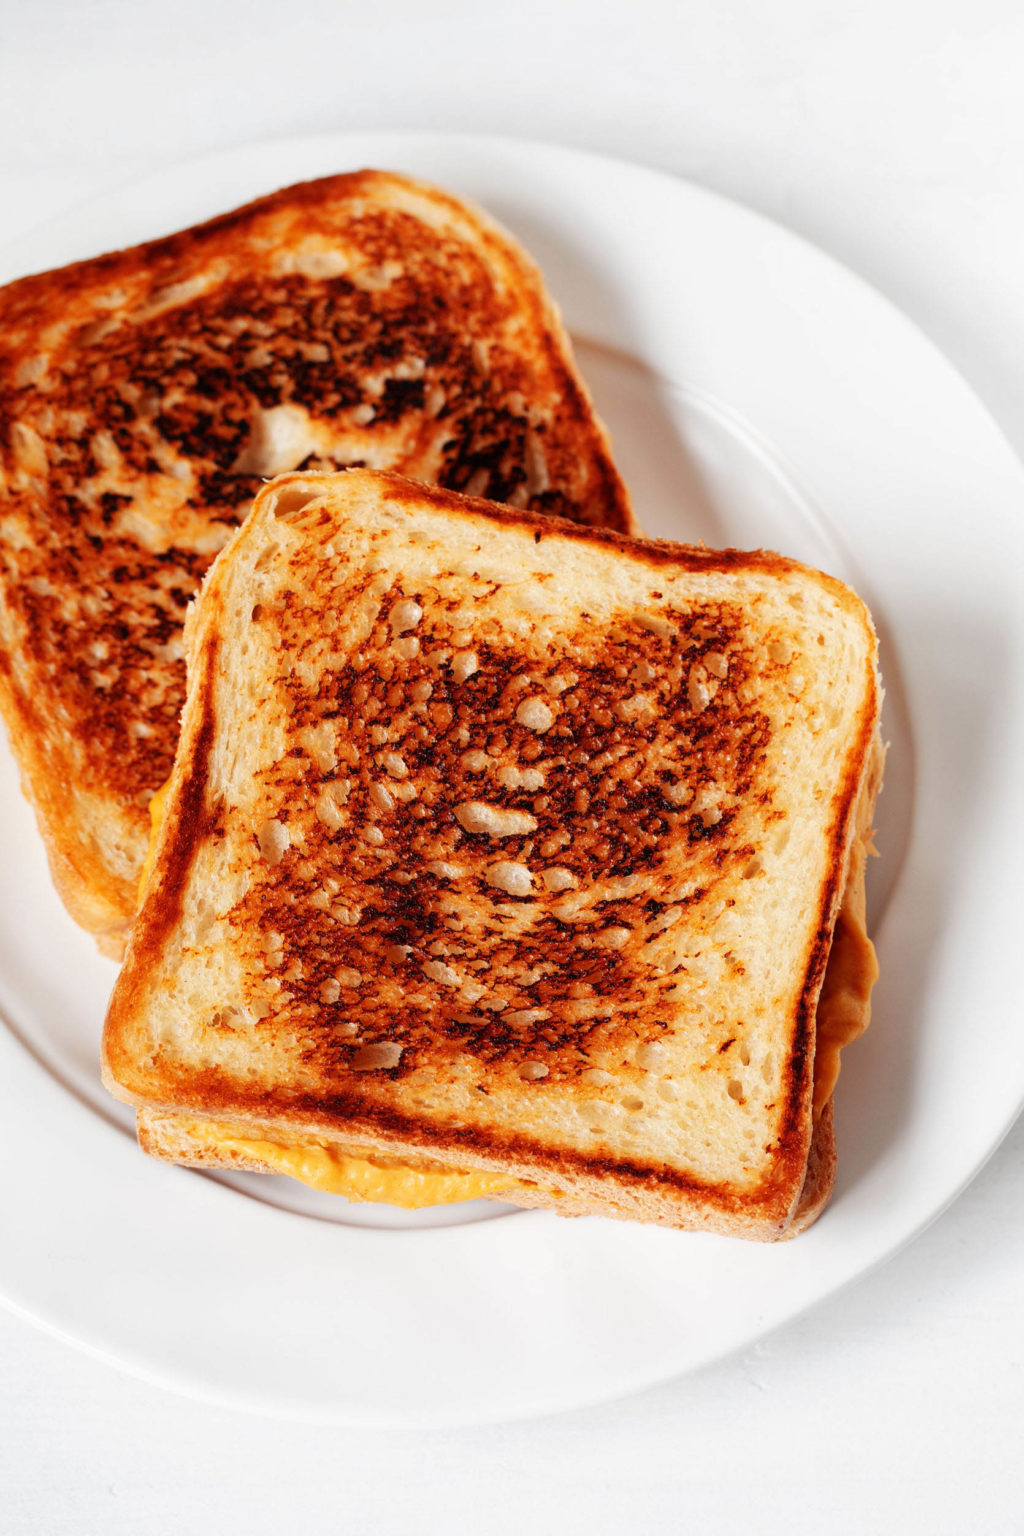 A toasted vegan grilled cheese sandwich is resting on a rimmed, white plate. The plate is resting on a white surface.